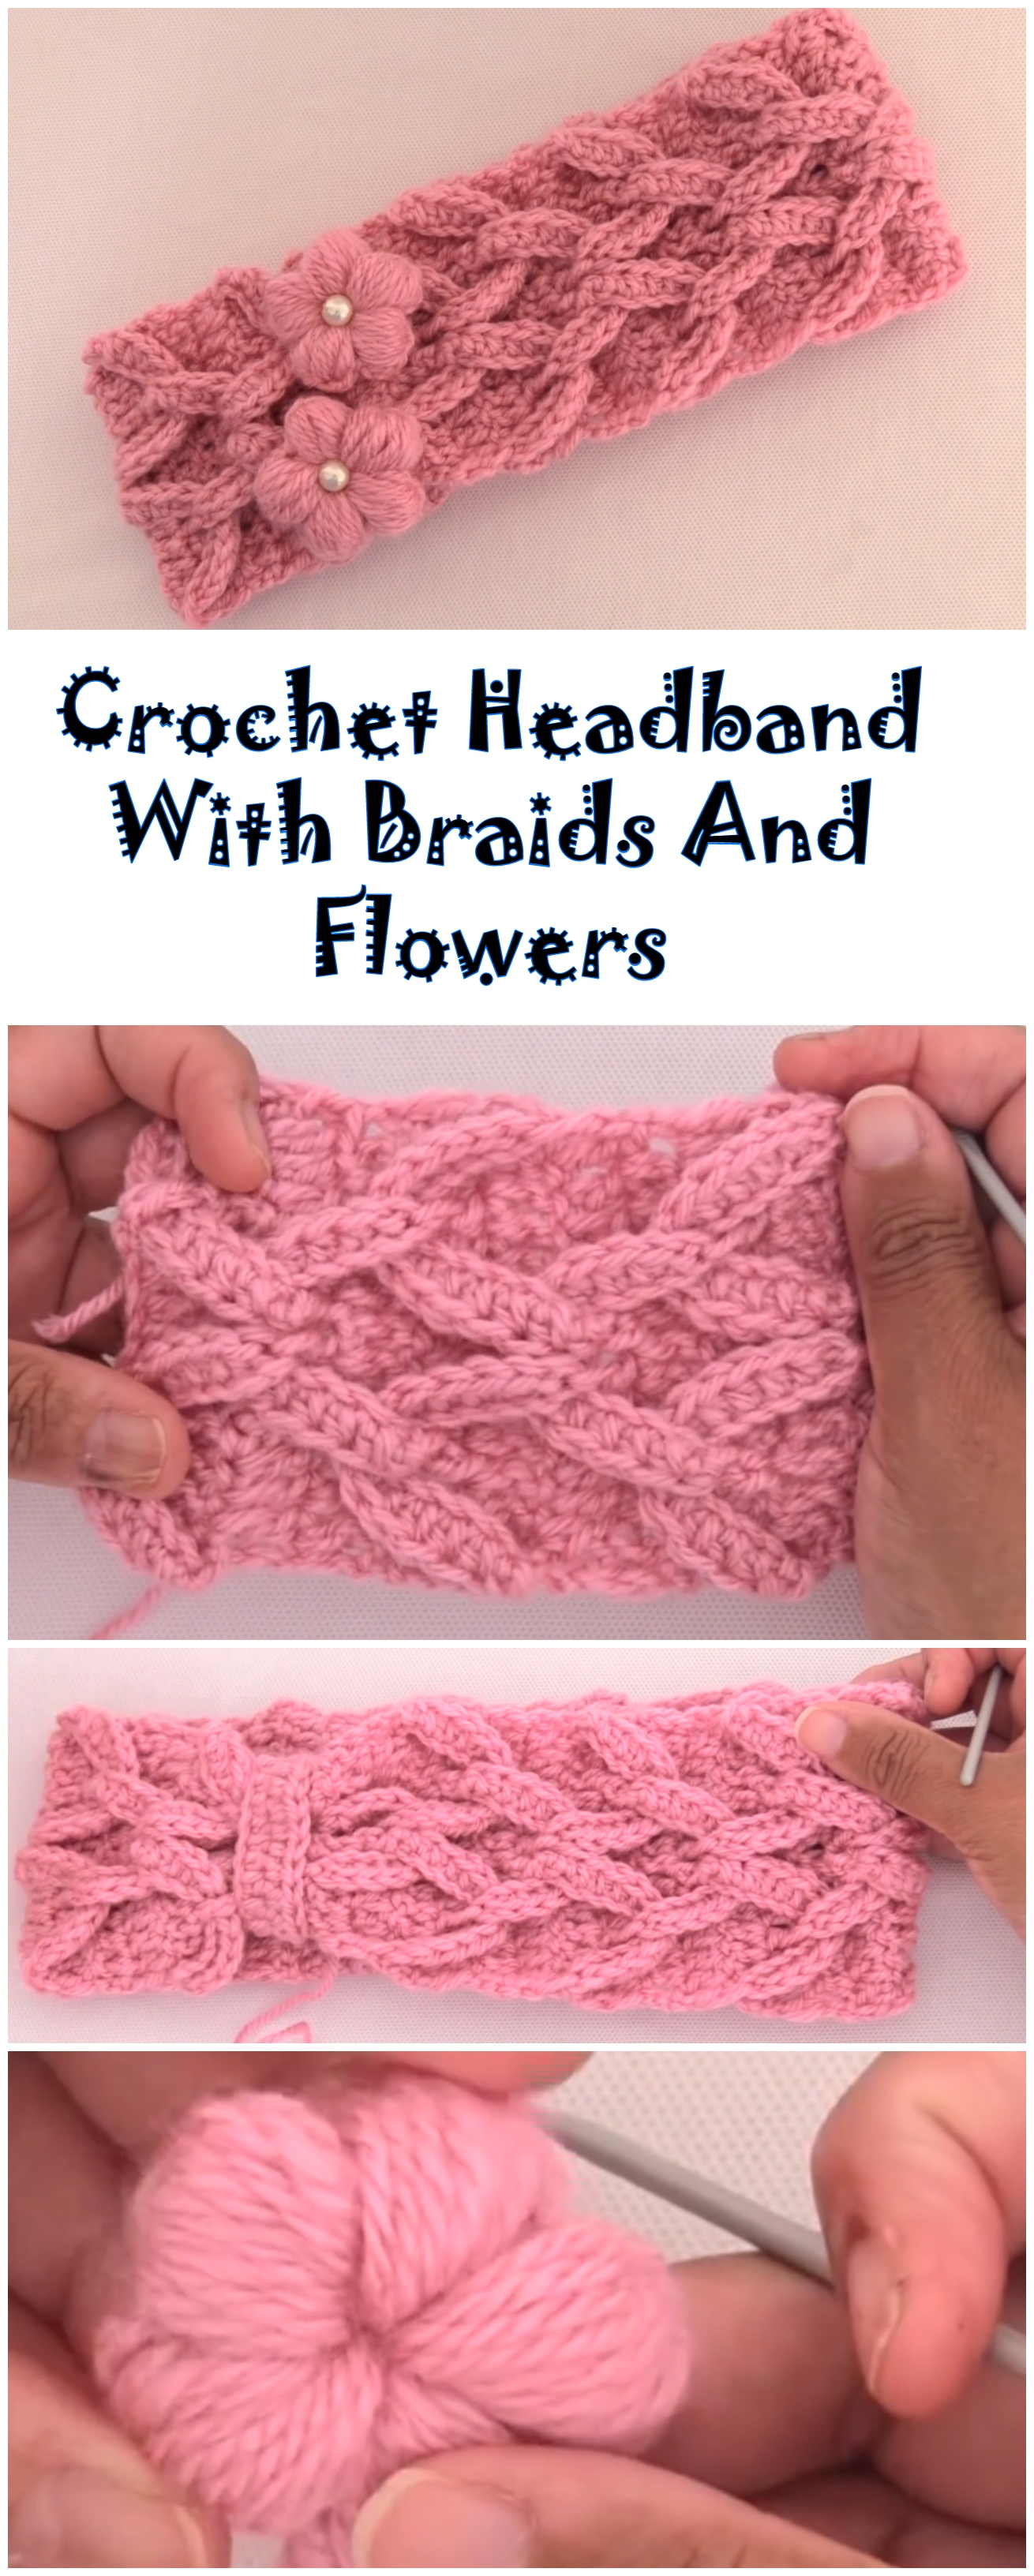 Crochet Headband With Braids And Flowers